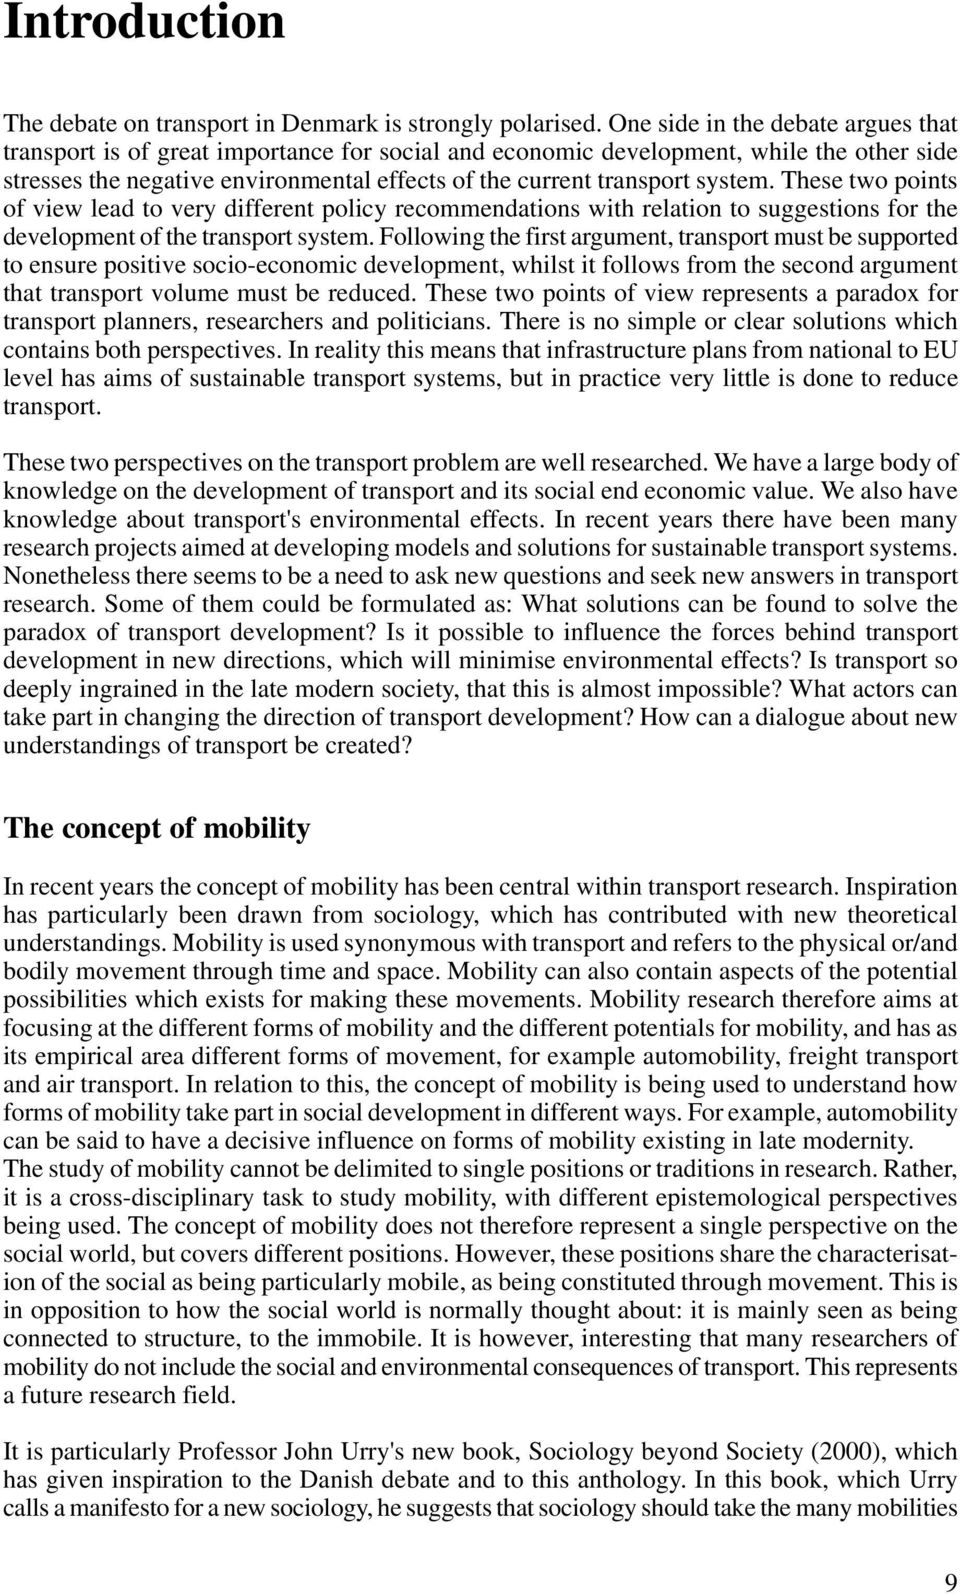 system. These two points of view lead to very different policy recommendations with relation to suggestions for the development of the transport system.